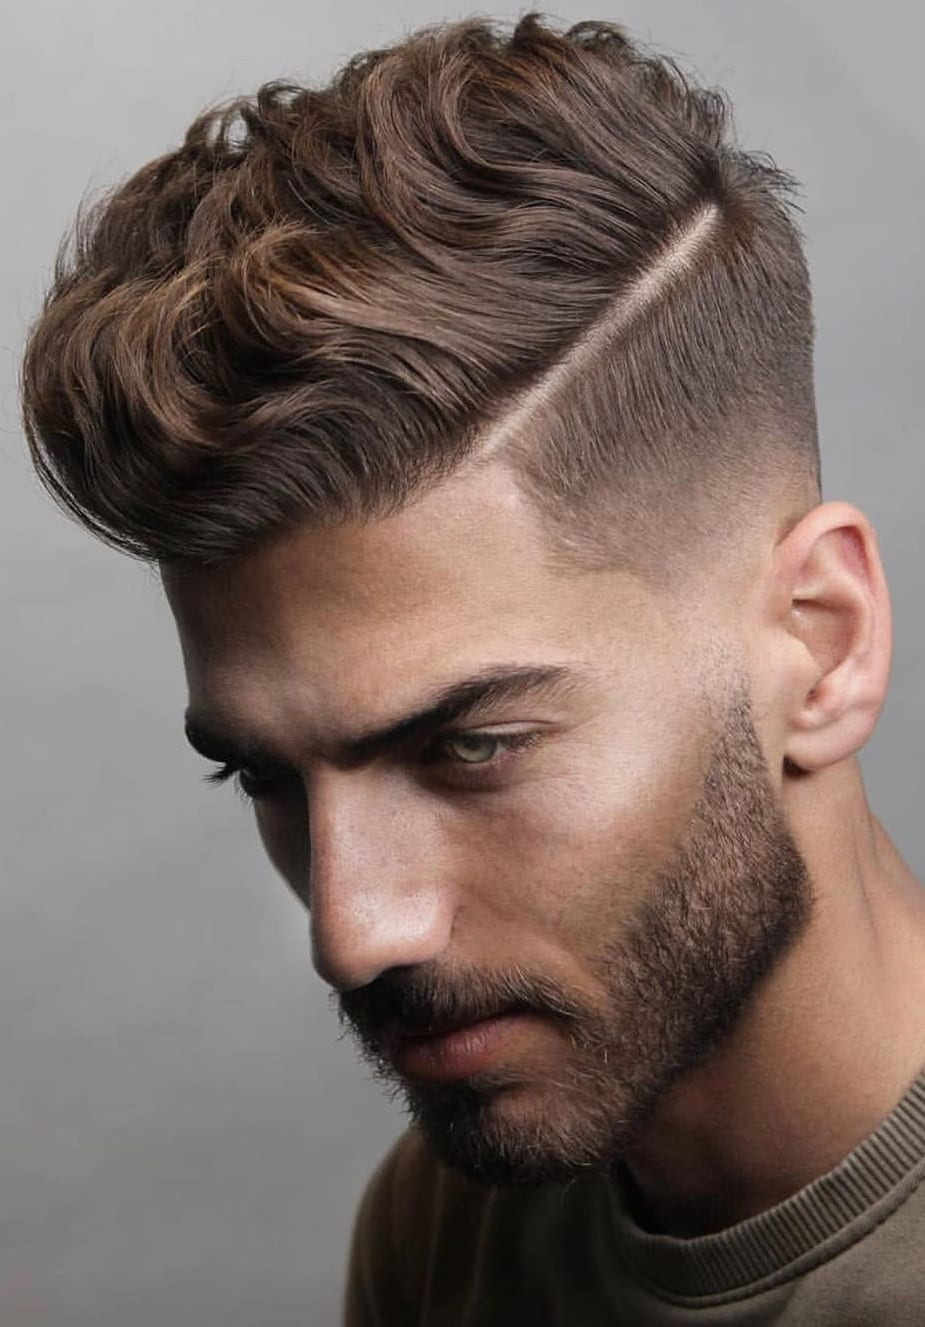 Amazing Haircuts for Men to try in 2020